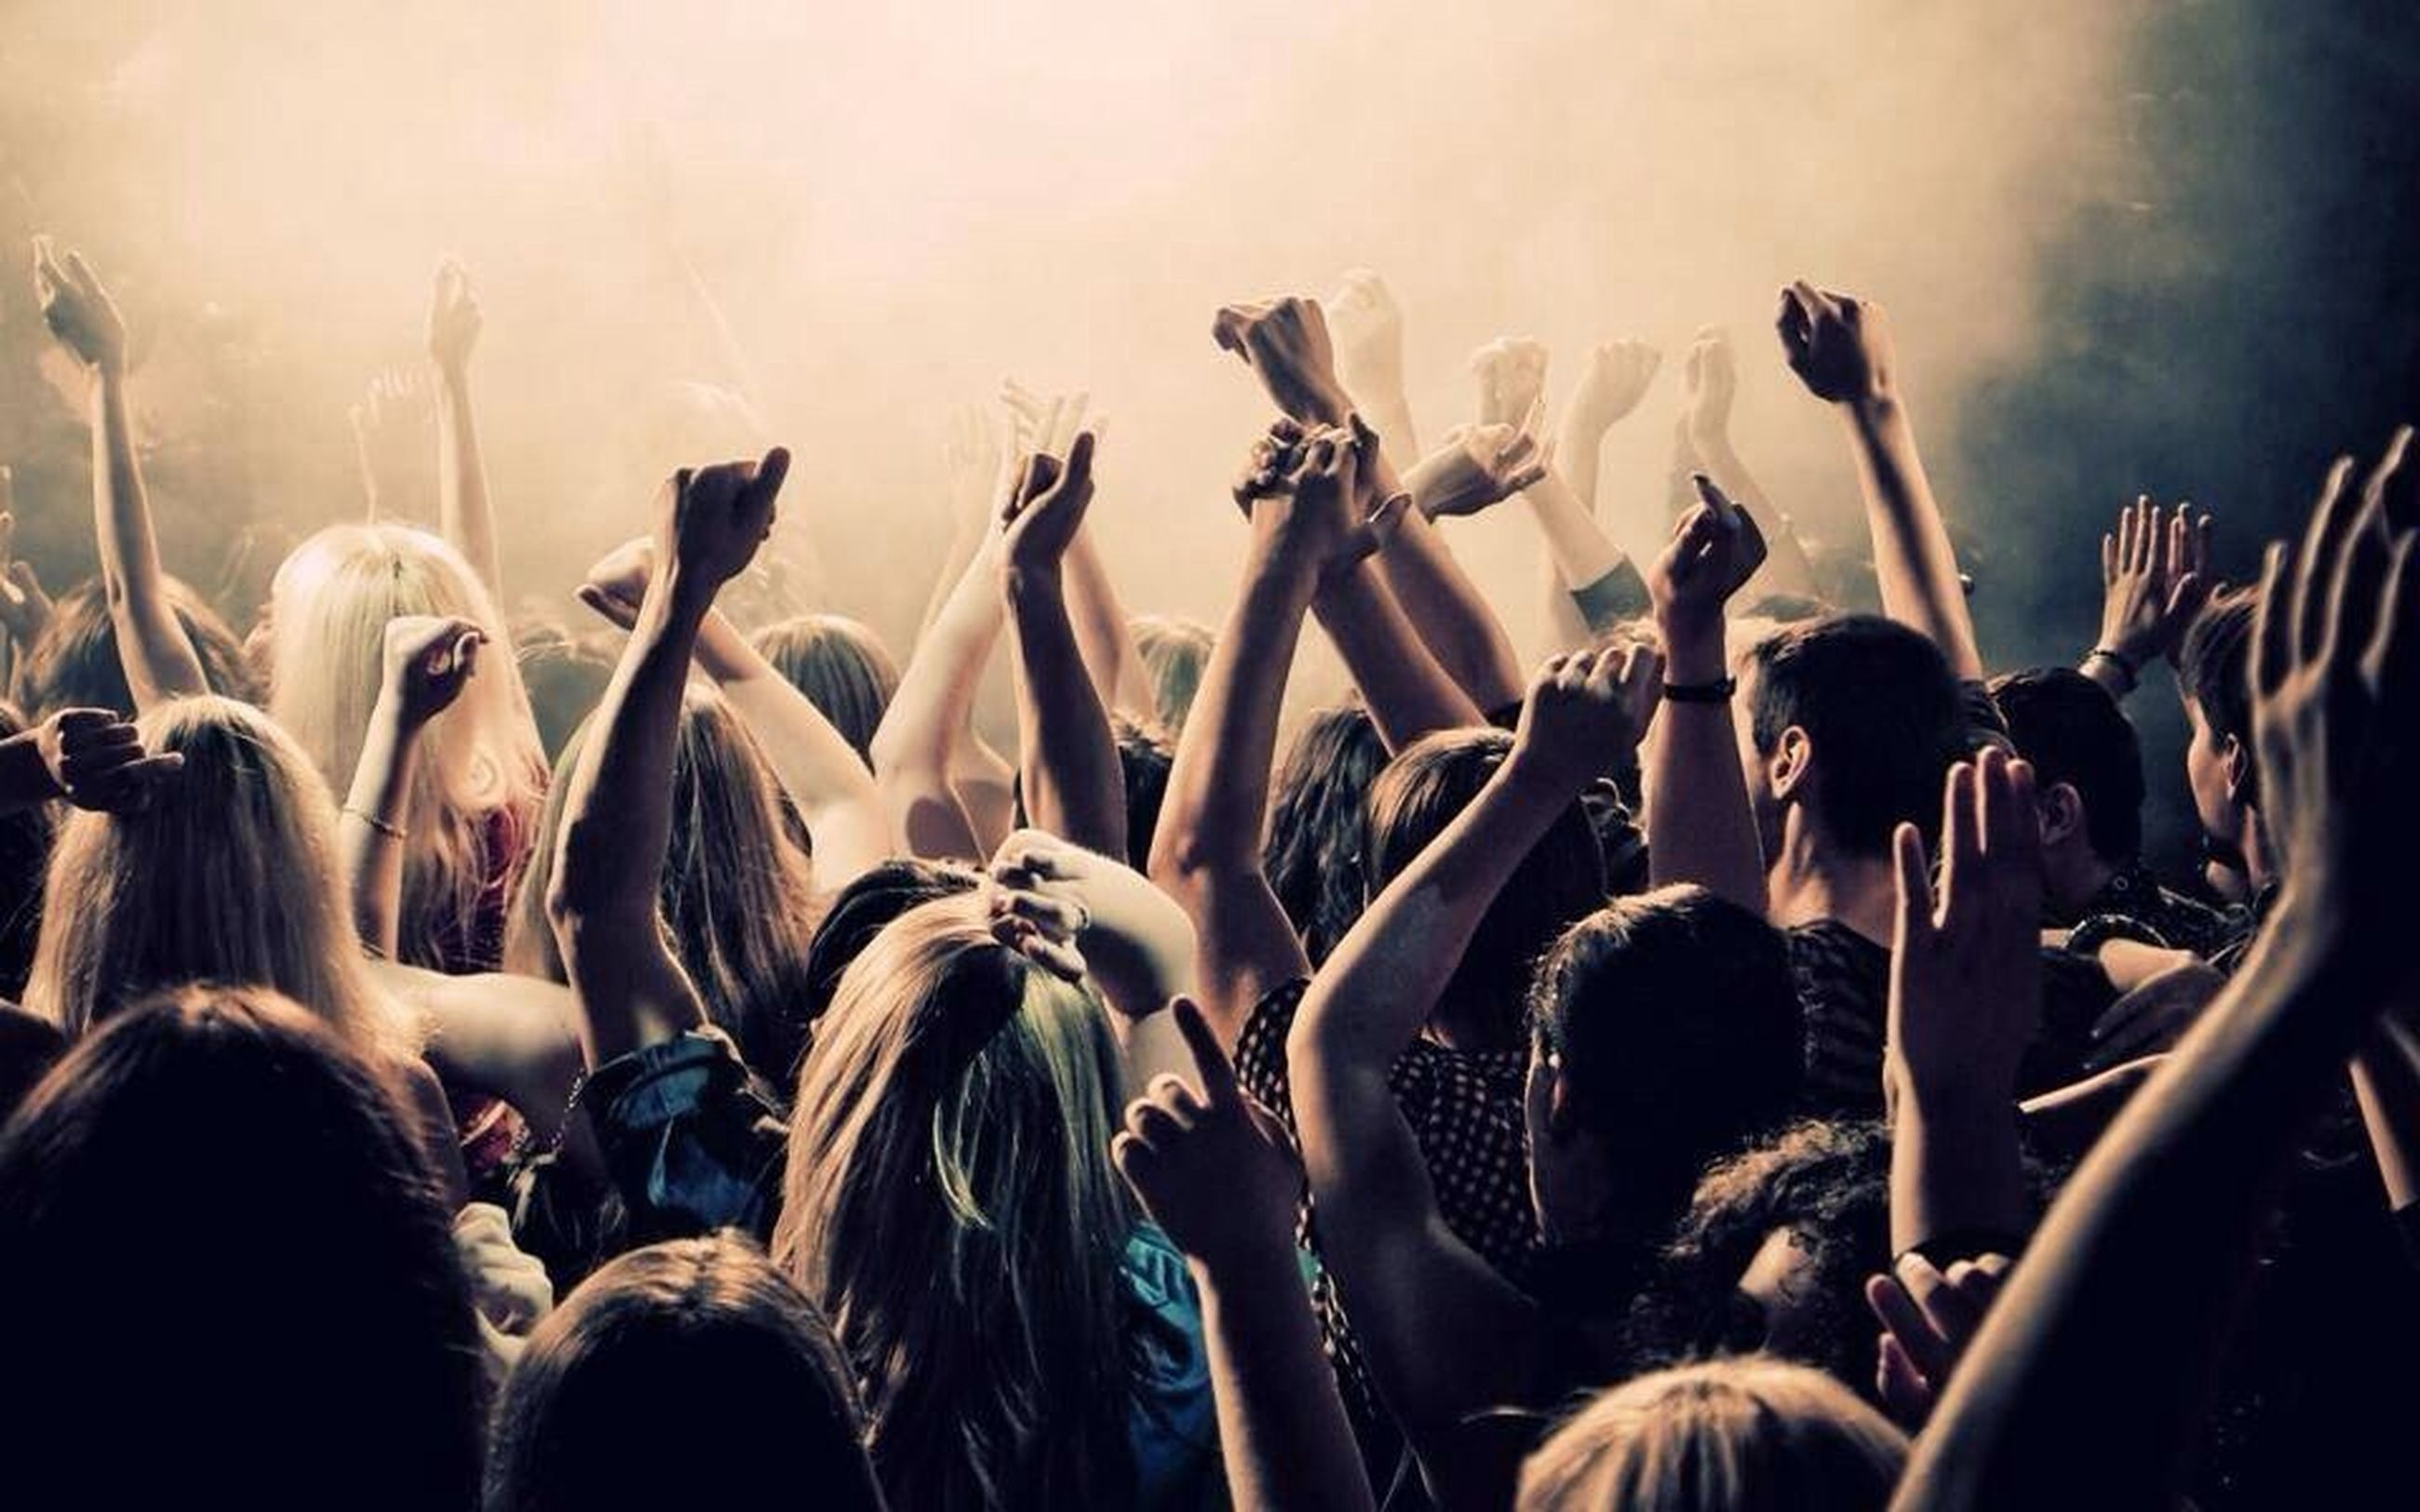 large group of people, crowd, person, arts culture and entertainment, men, lifestyles, leisure activity, event, silhouette, togetherness, celebration, music, sky, outdoors, enjoyment, panoramic, performance